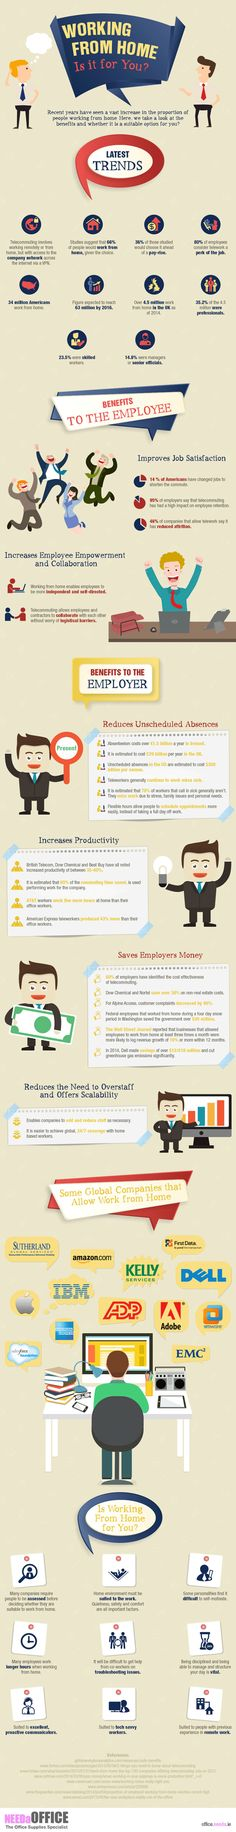 Benefits of Working from Home [INFOGRAPHIC]   Marketing Mojo for Small Business